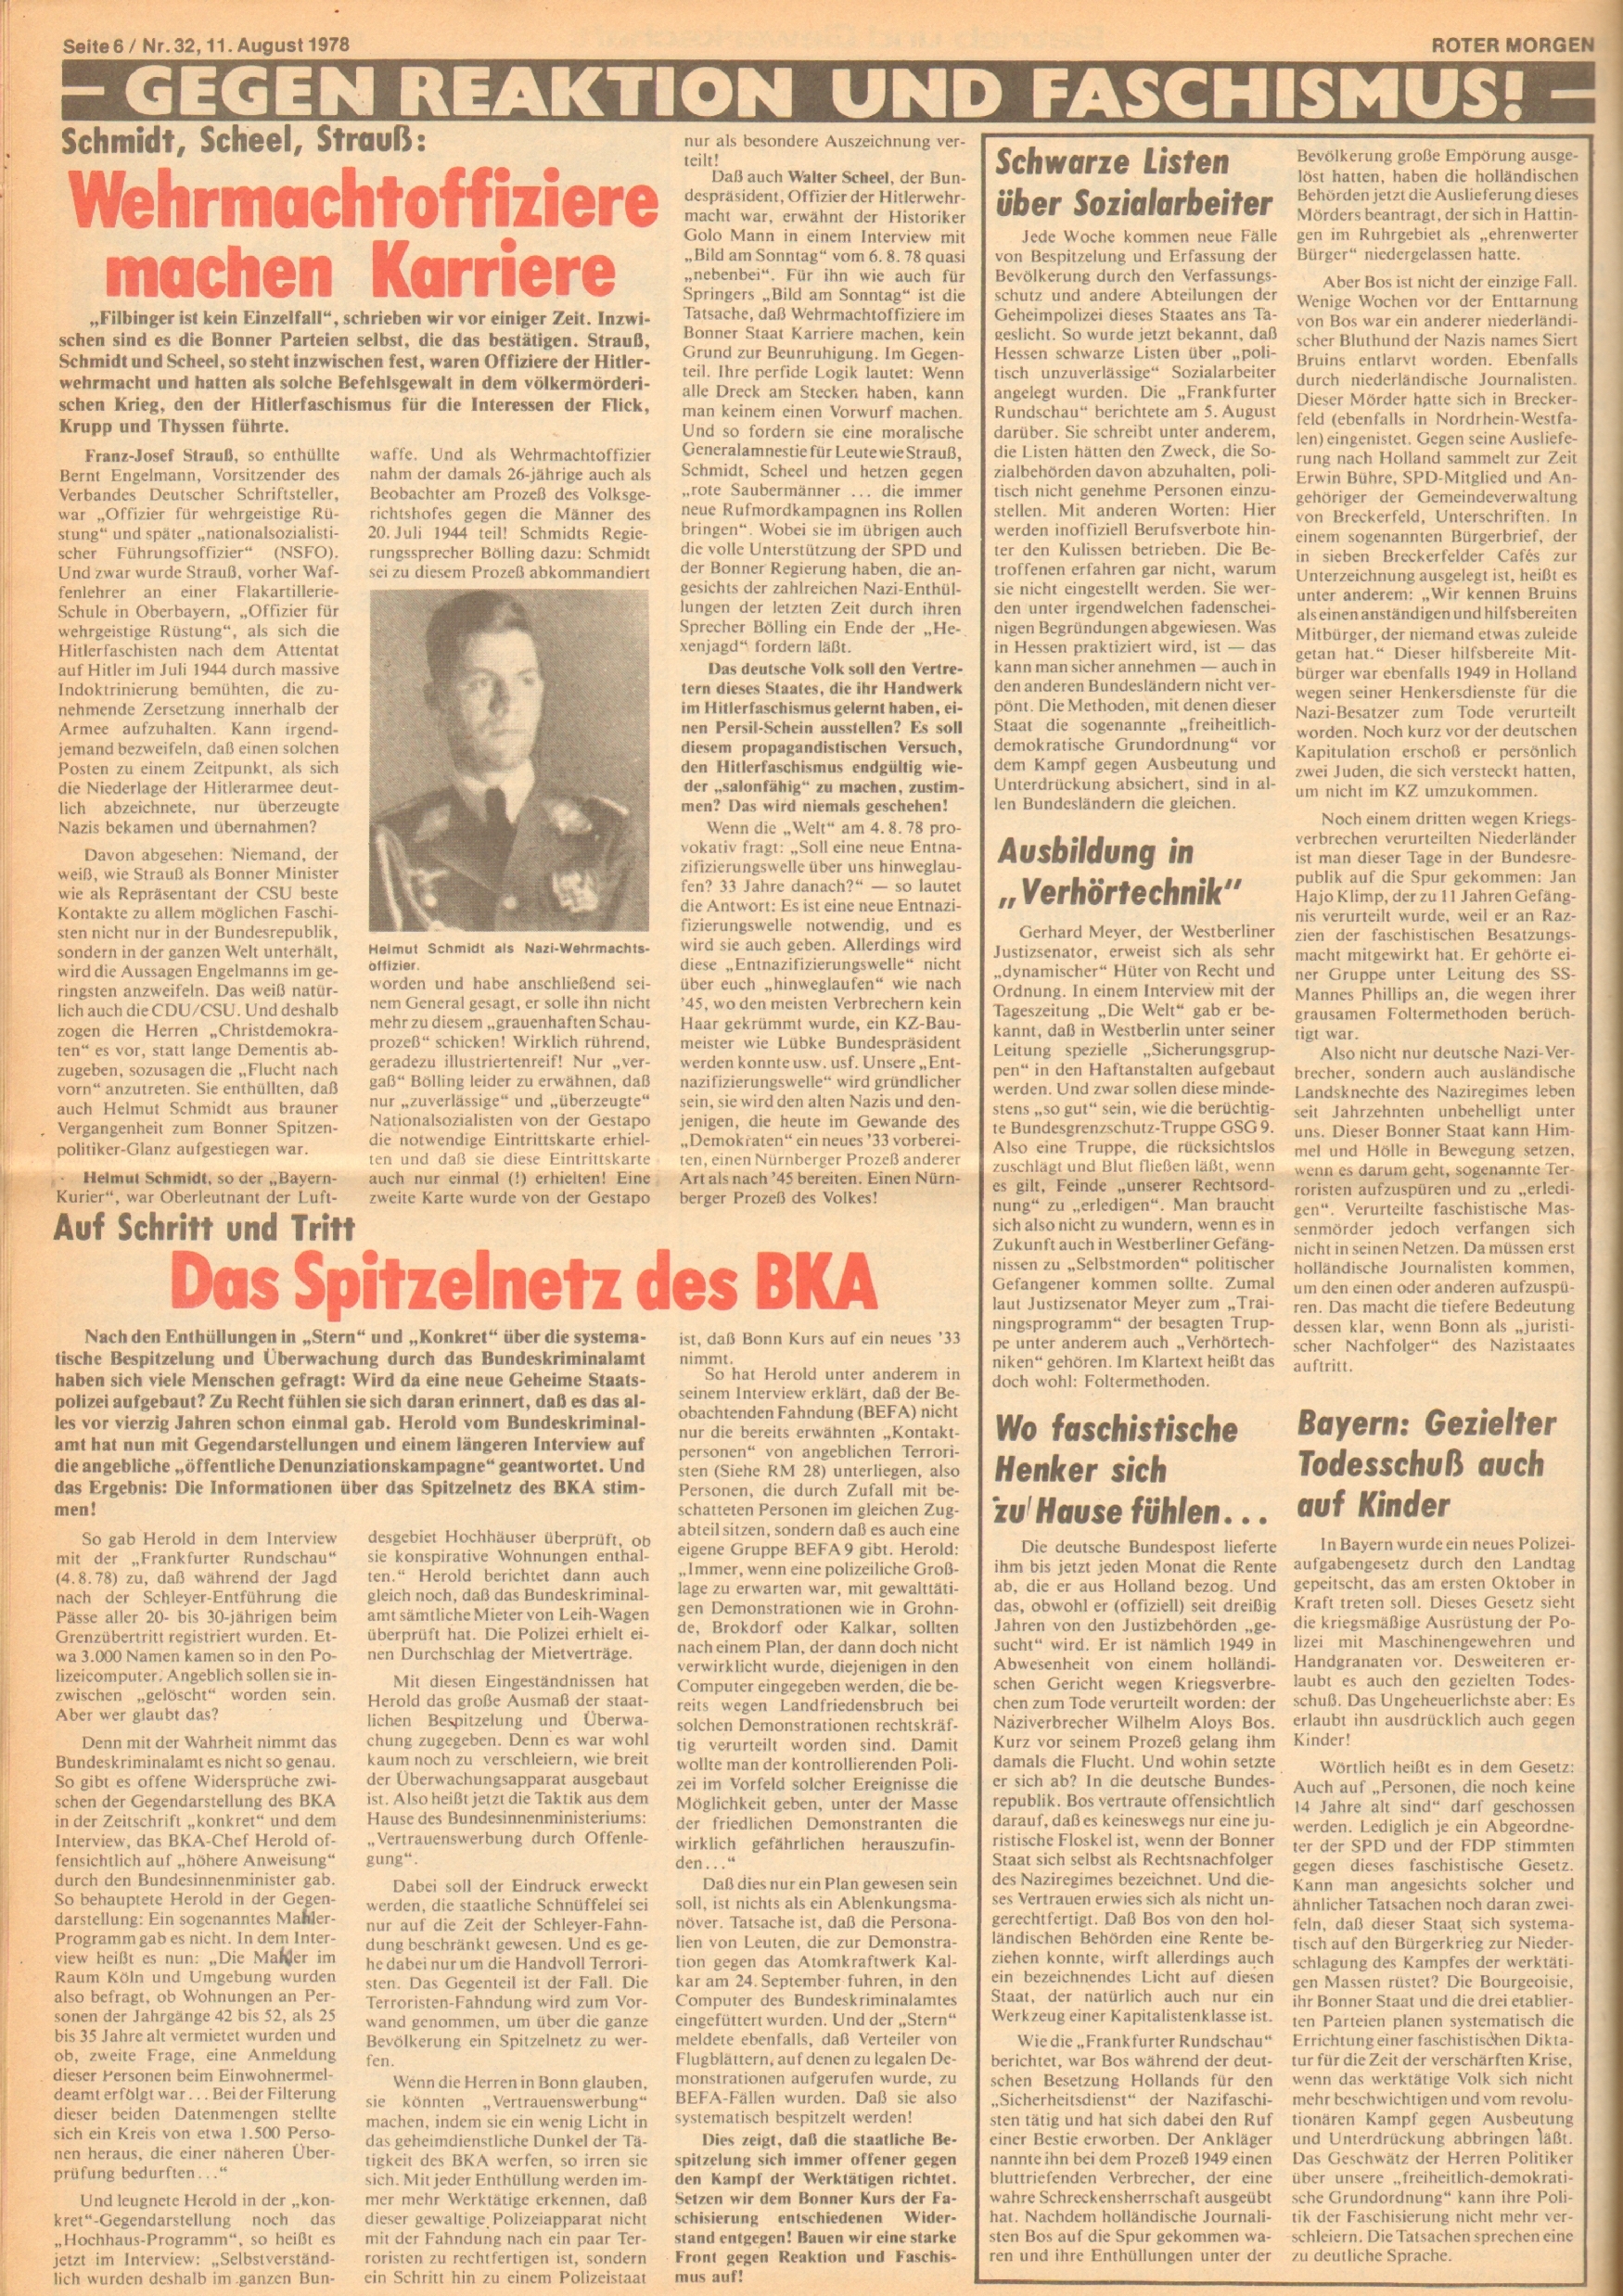 Roter Morgen, 12. Jg., 11. August 1978, Nr. 32, Seite 6